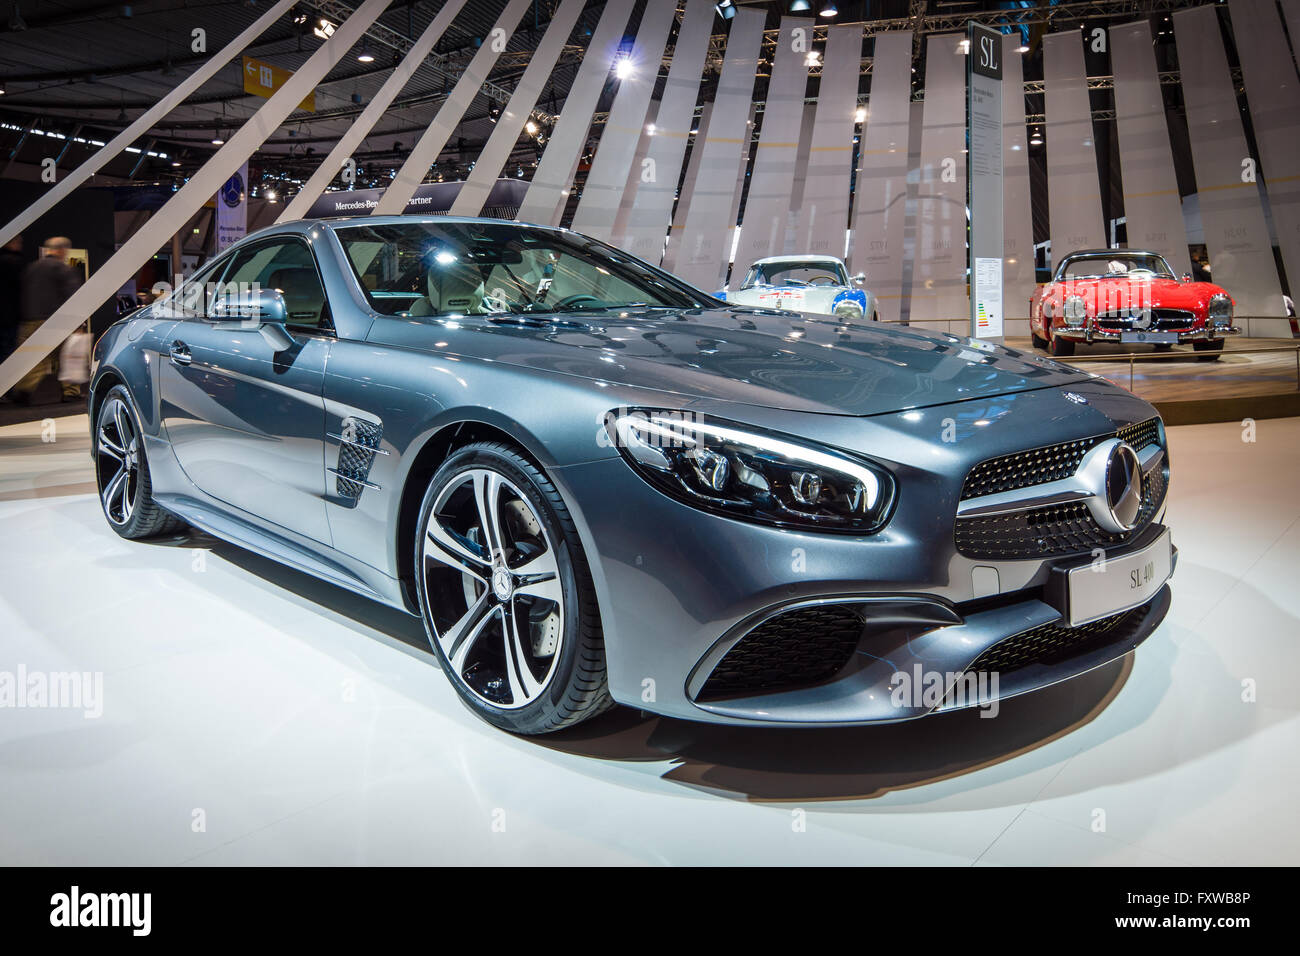 Sports car mercedes benz sl 400 r231 2016 stock photo for Mercedes benz sports cars